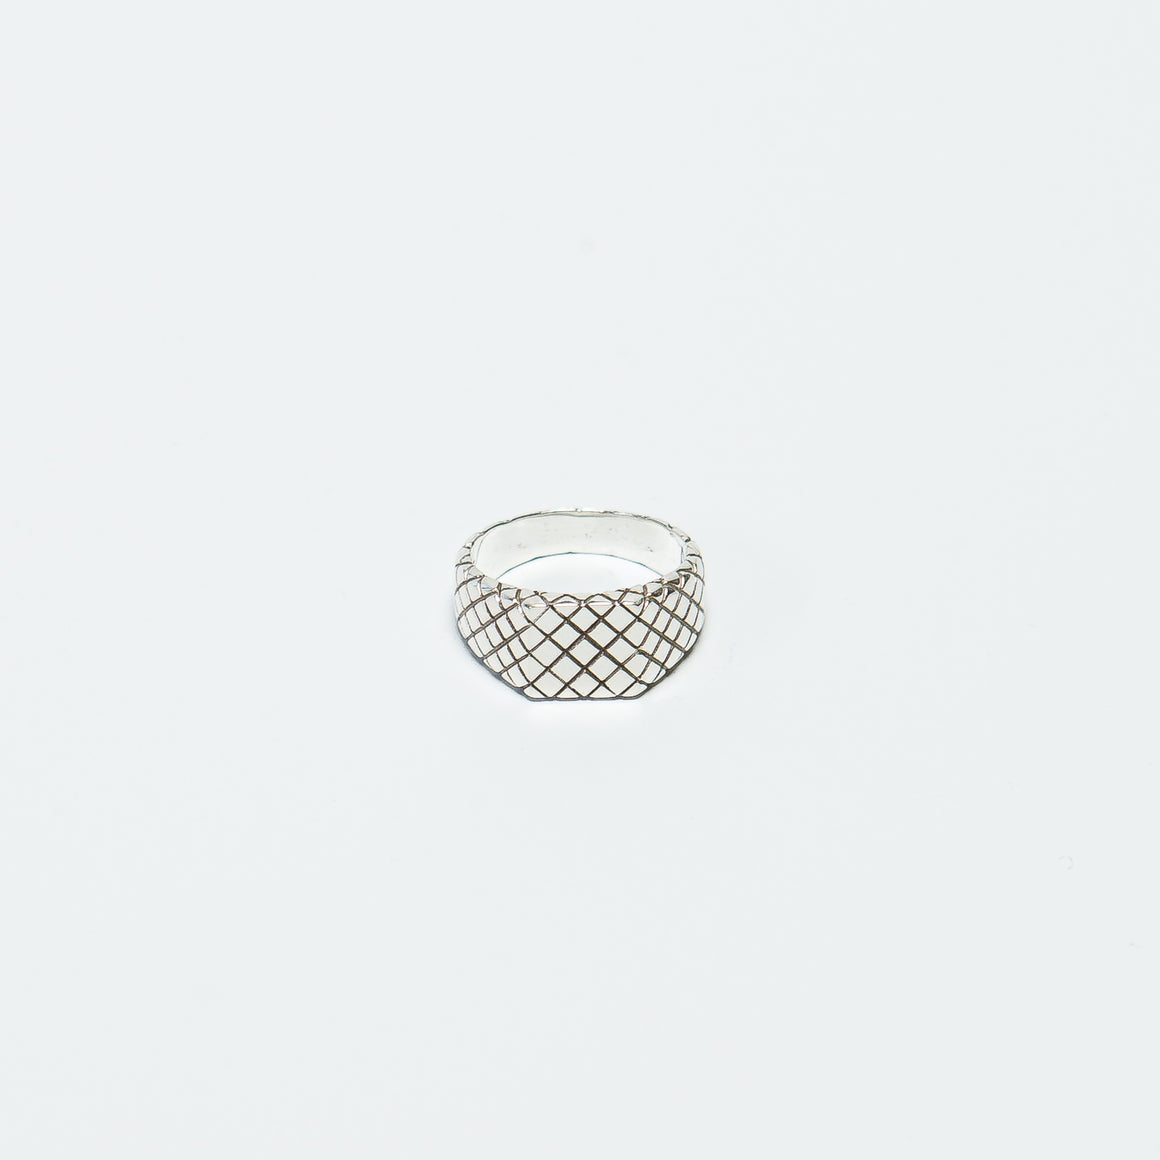 Maple - Quilted Signet Ring - Silver 925 - Up There